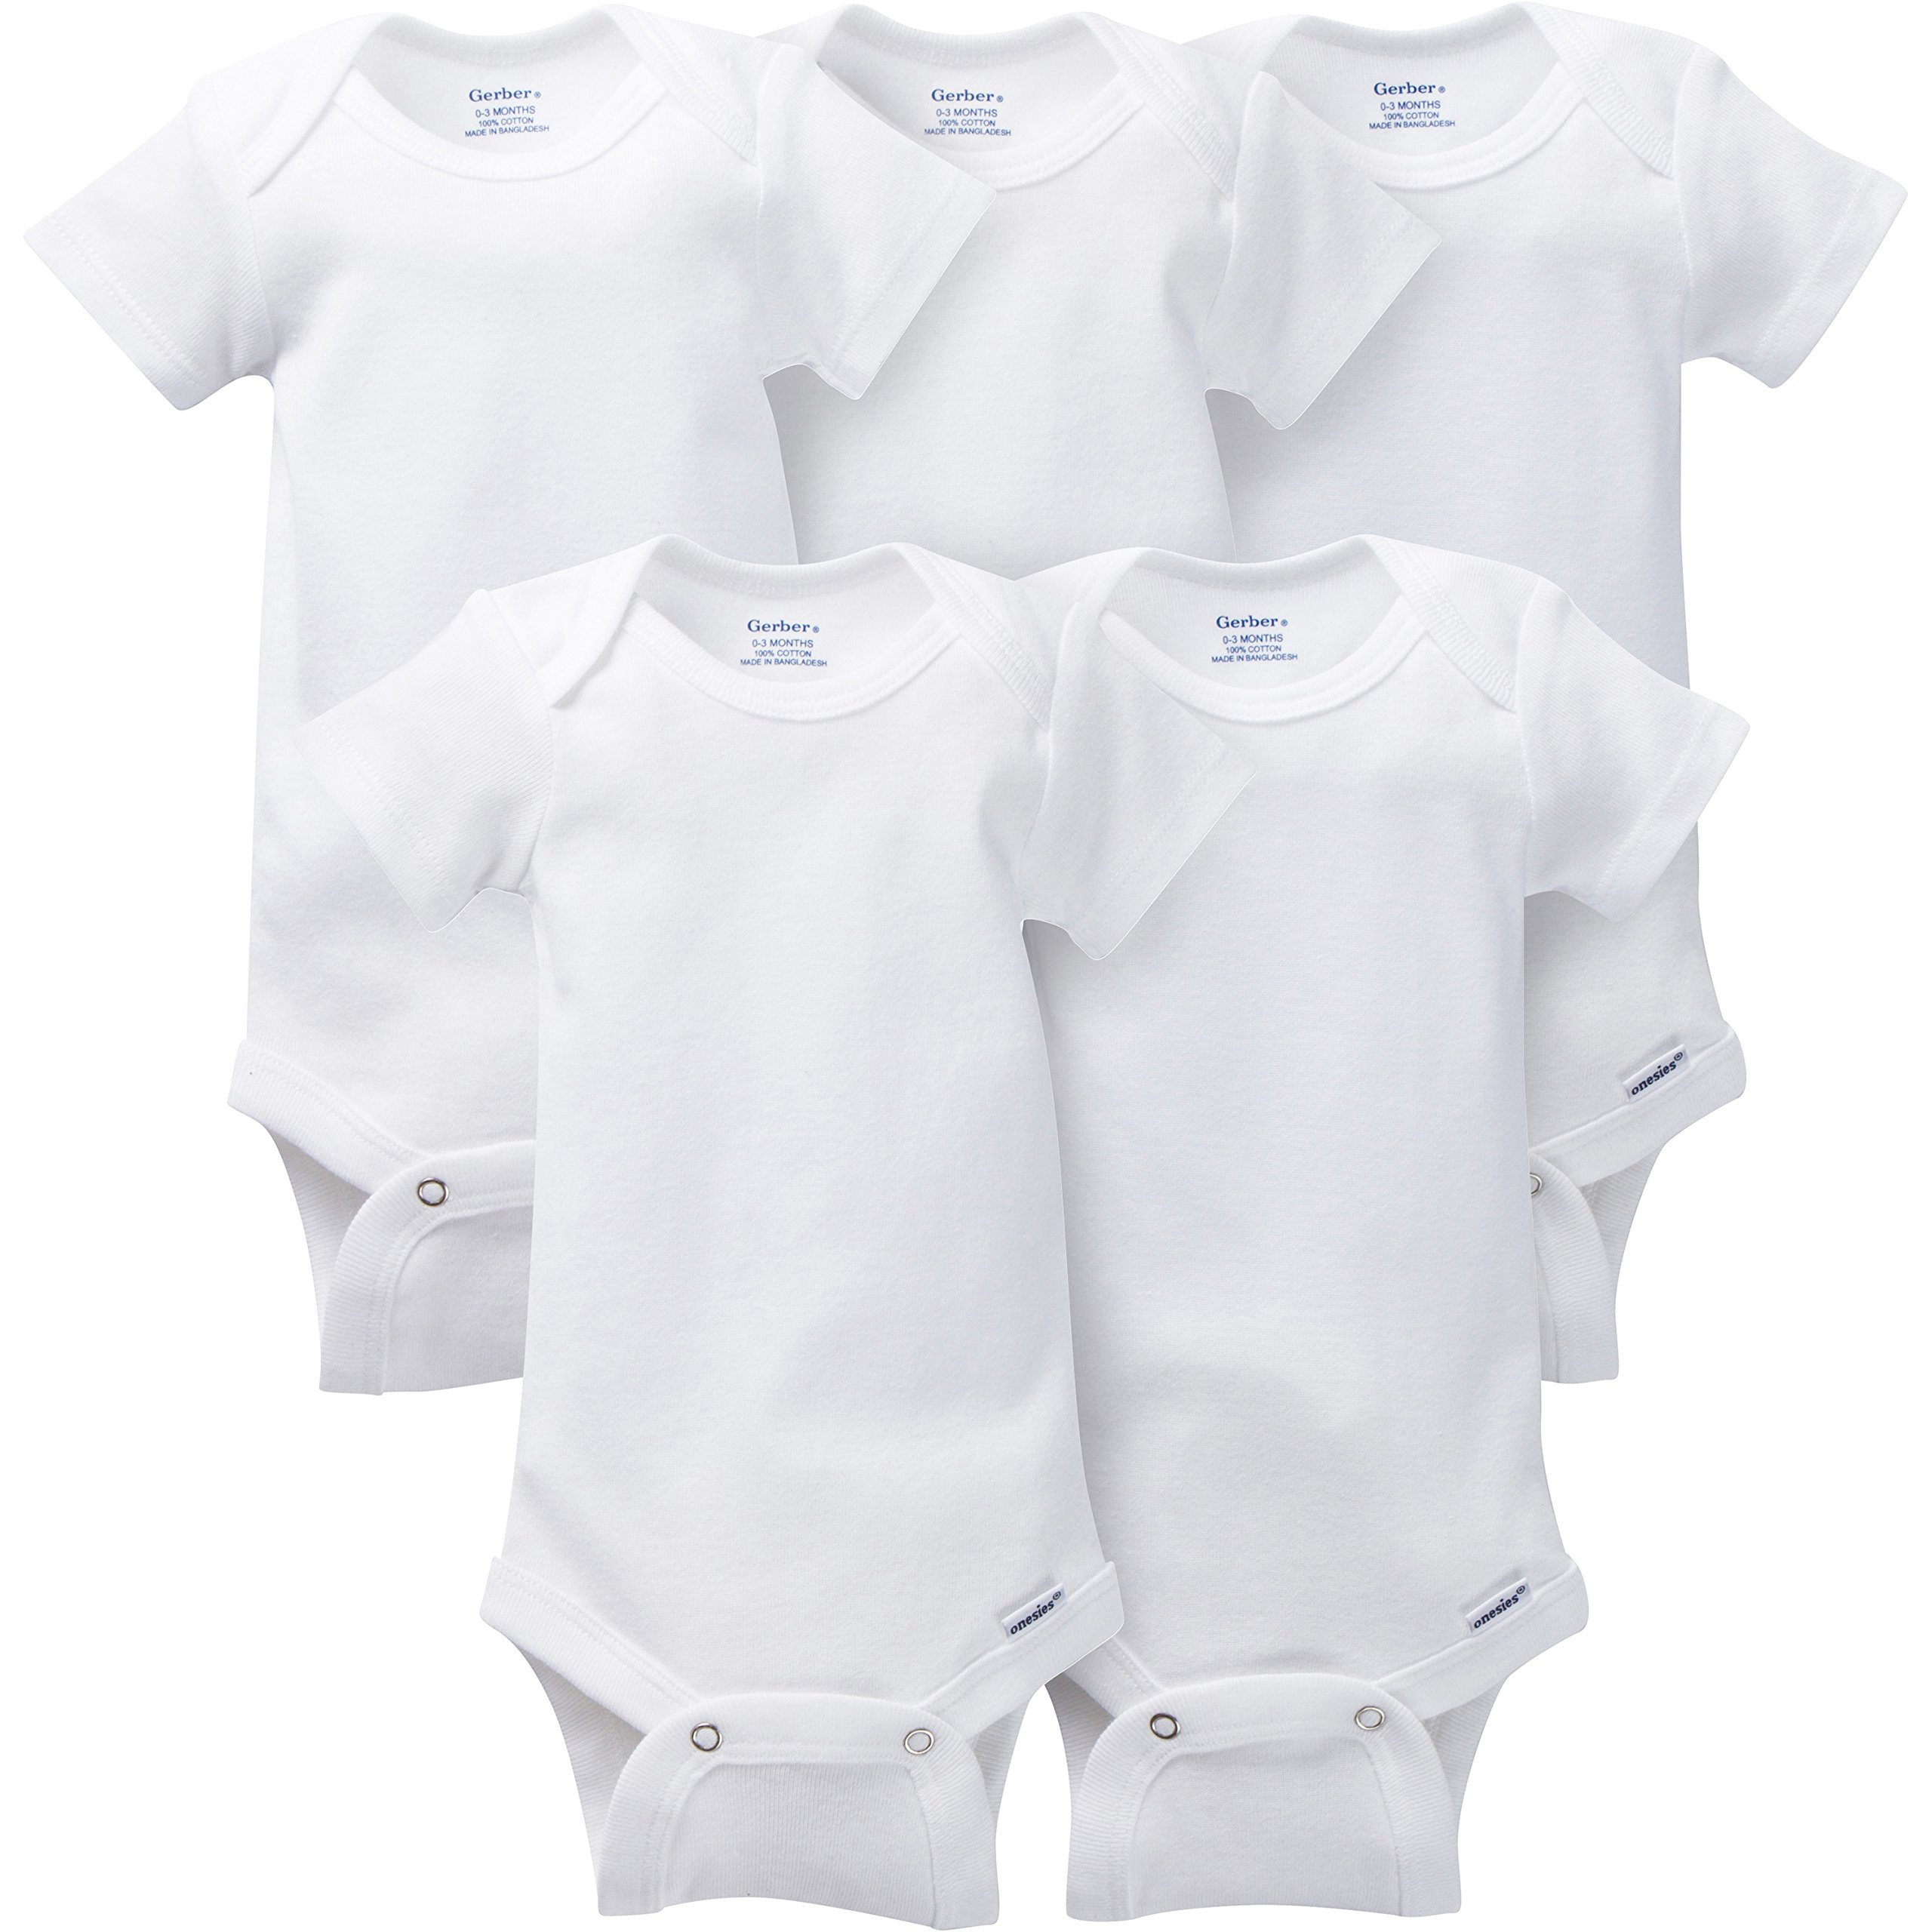 Gerber Baby 5-Pack Solid Onesies Bodysuits, White, 0-3 Months